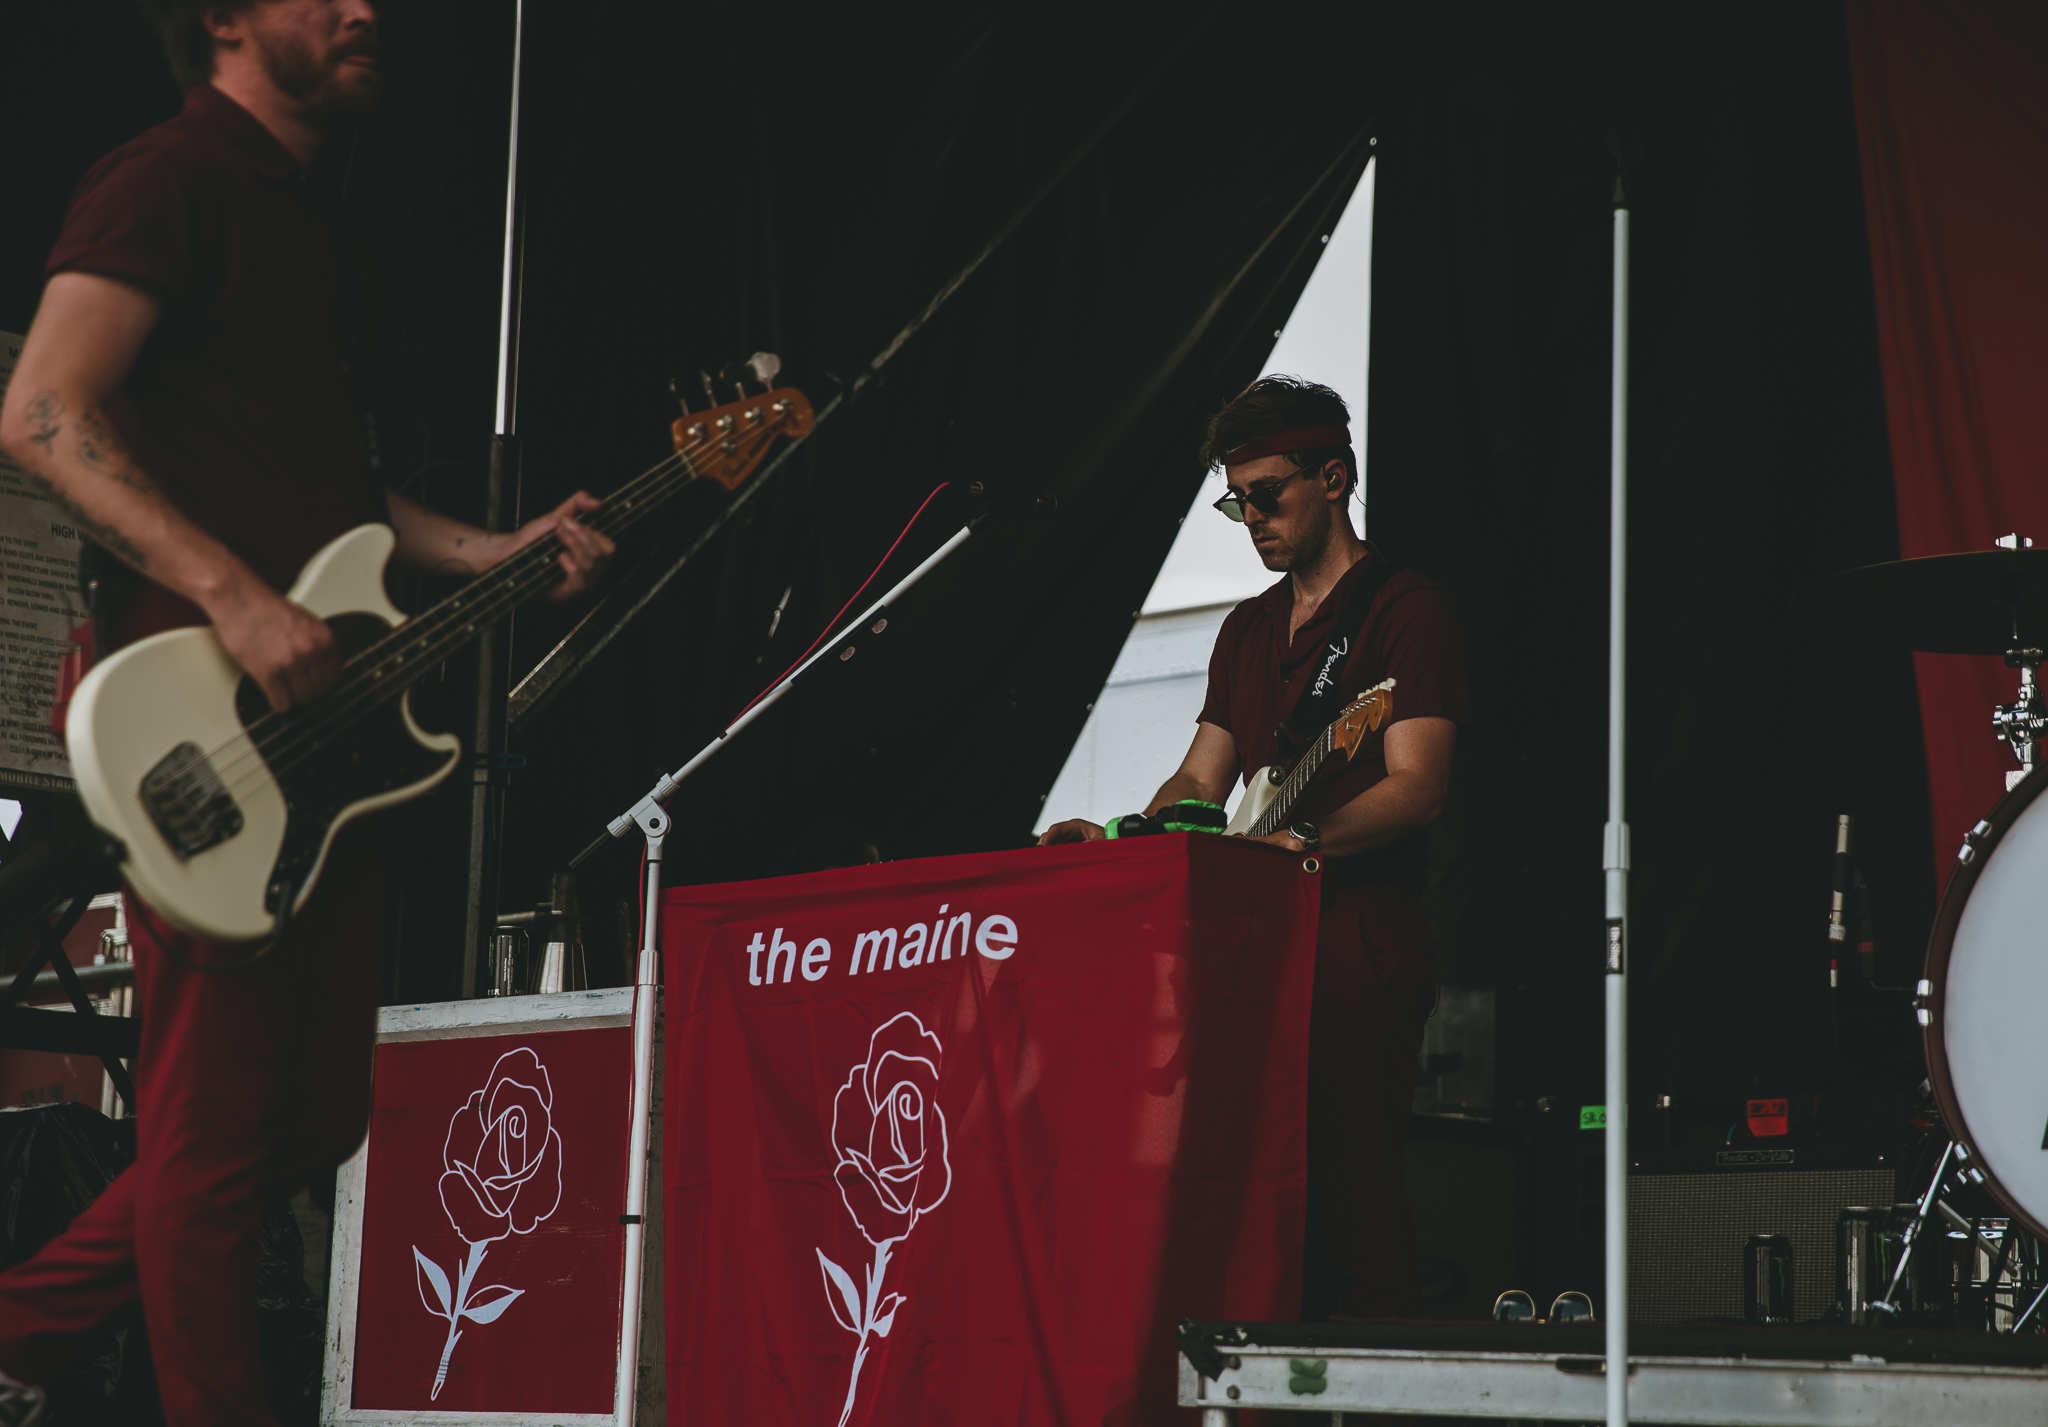 THE MAINE PERFORMING AT VAN'S WARPED TOUR IN SAN ANTONIO, TX ON JULY 07, 2018.